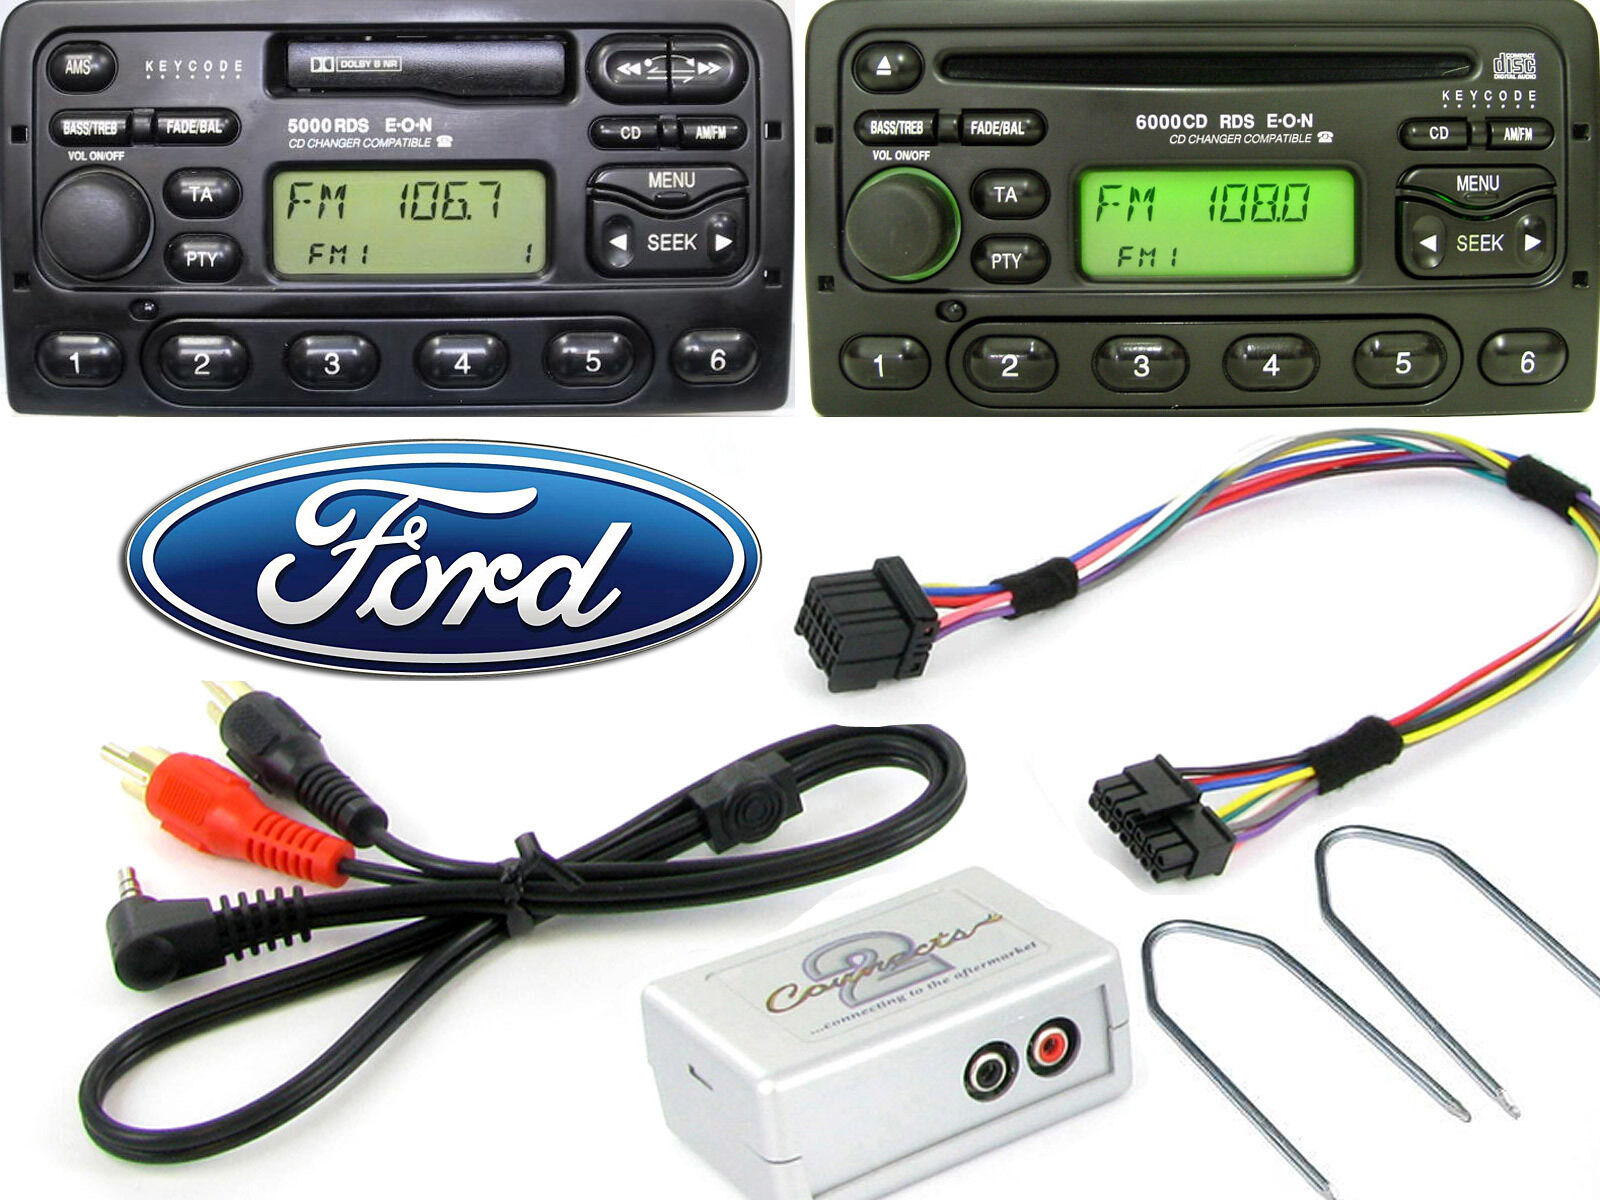 Ford Galaxy Explorer Ka Aux Adapter With Radio Removal Release Keys Ctvfox Free Shipping